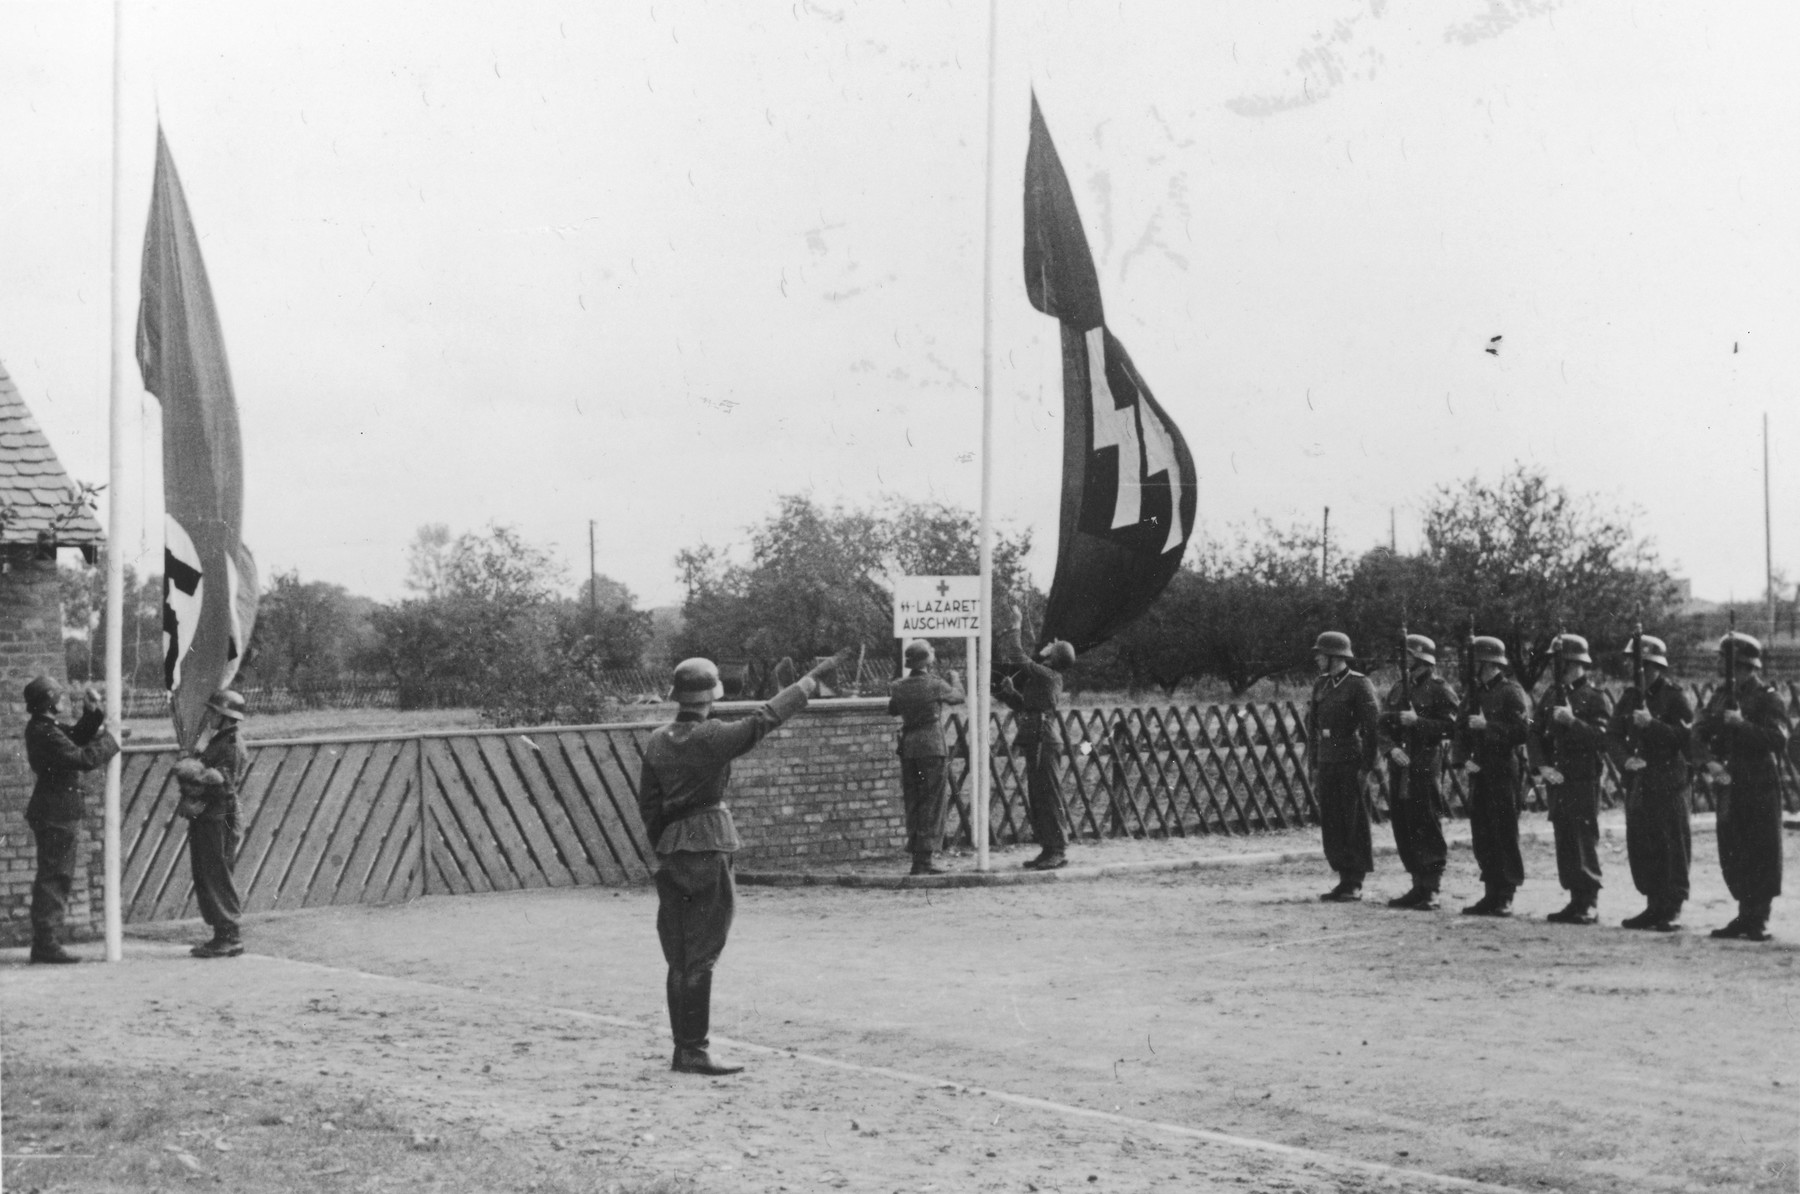 "A Nazi soldier salutes as the Nazi and SS flags are raised while a line of troops stand with rifles at attention during the dedication of a new SS hospital in Auschwitz.   The official caption reads ""Einweihung des SS-Lazarettes in Auschwitz"" (Dedication of the SS Hospital in Auschwitz)."